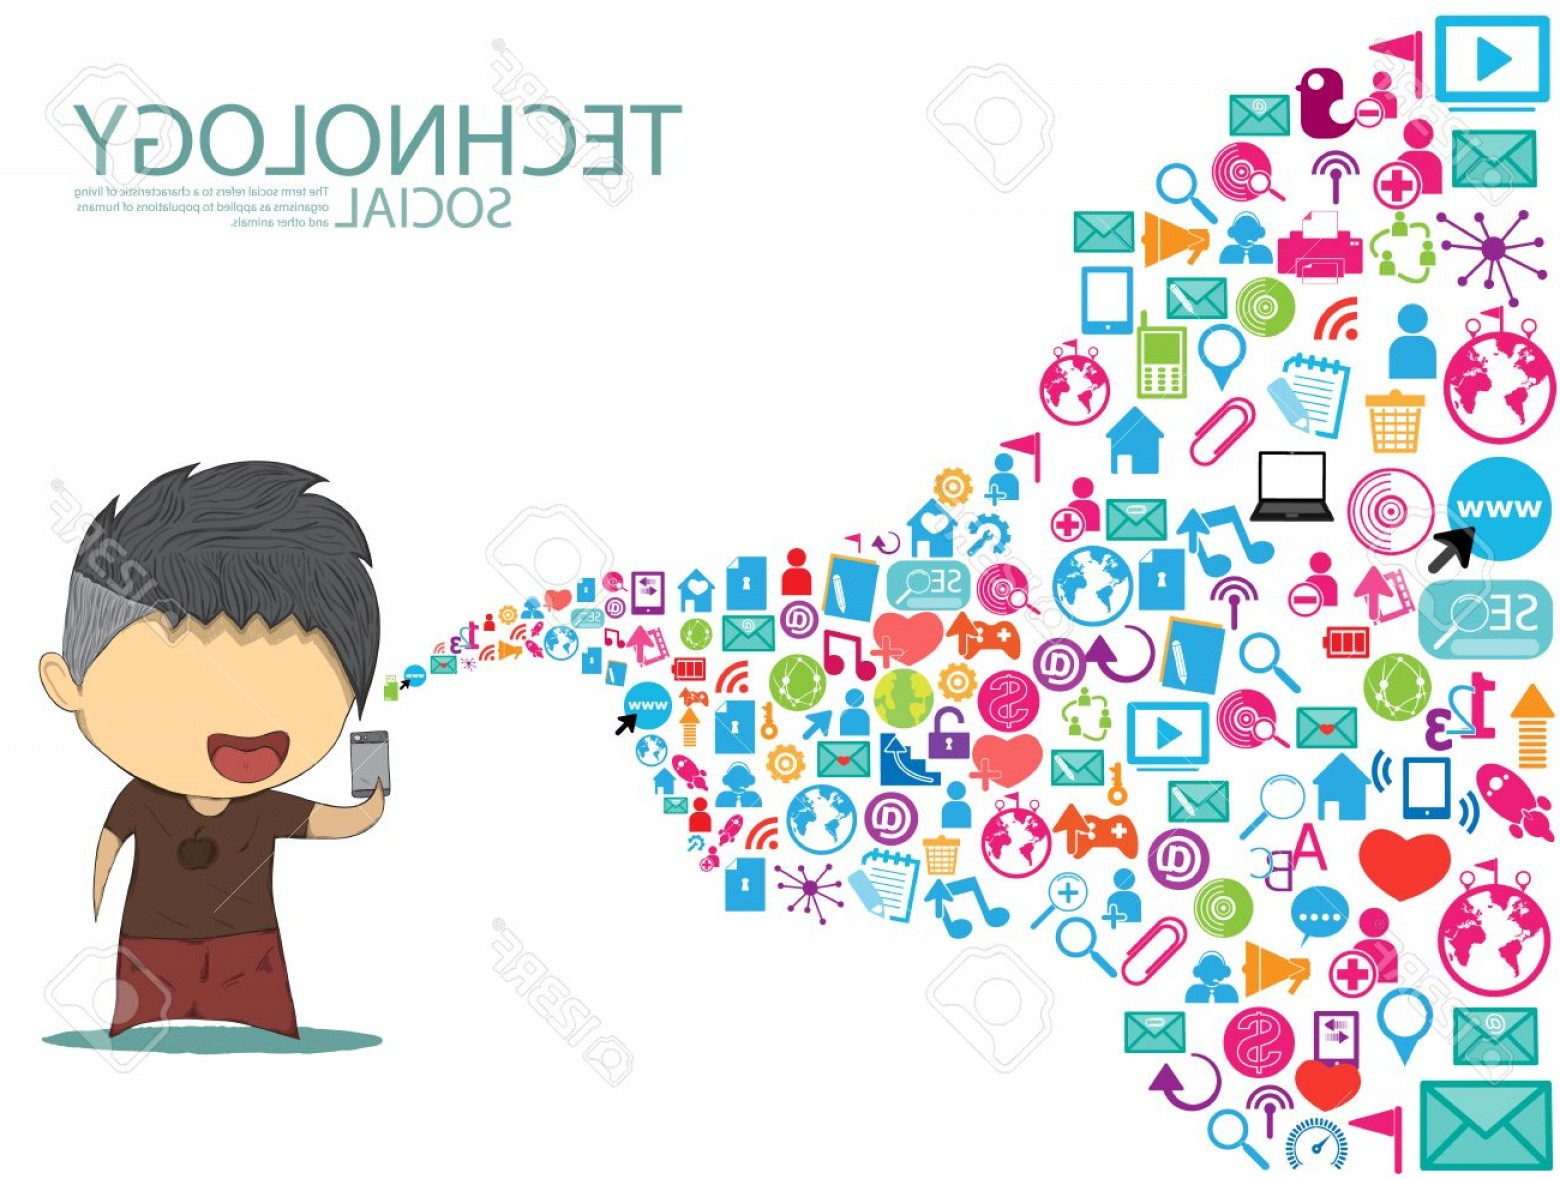 Vector Organisms On A Person: Photostock Vector Male Teens Playing With Phone Happy Template Design Thinking Idea With Social Network Icons Backgrou